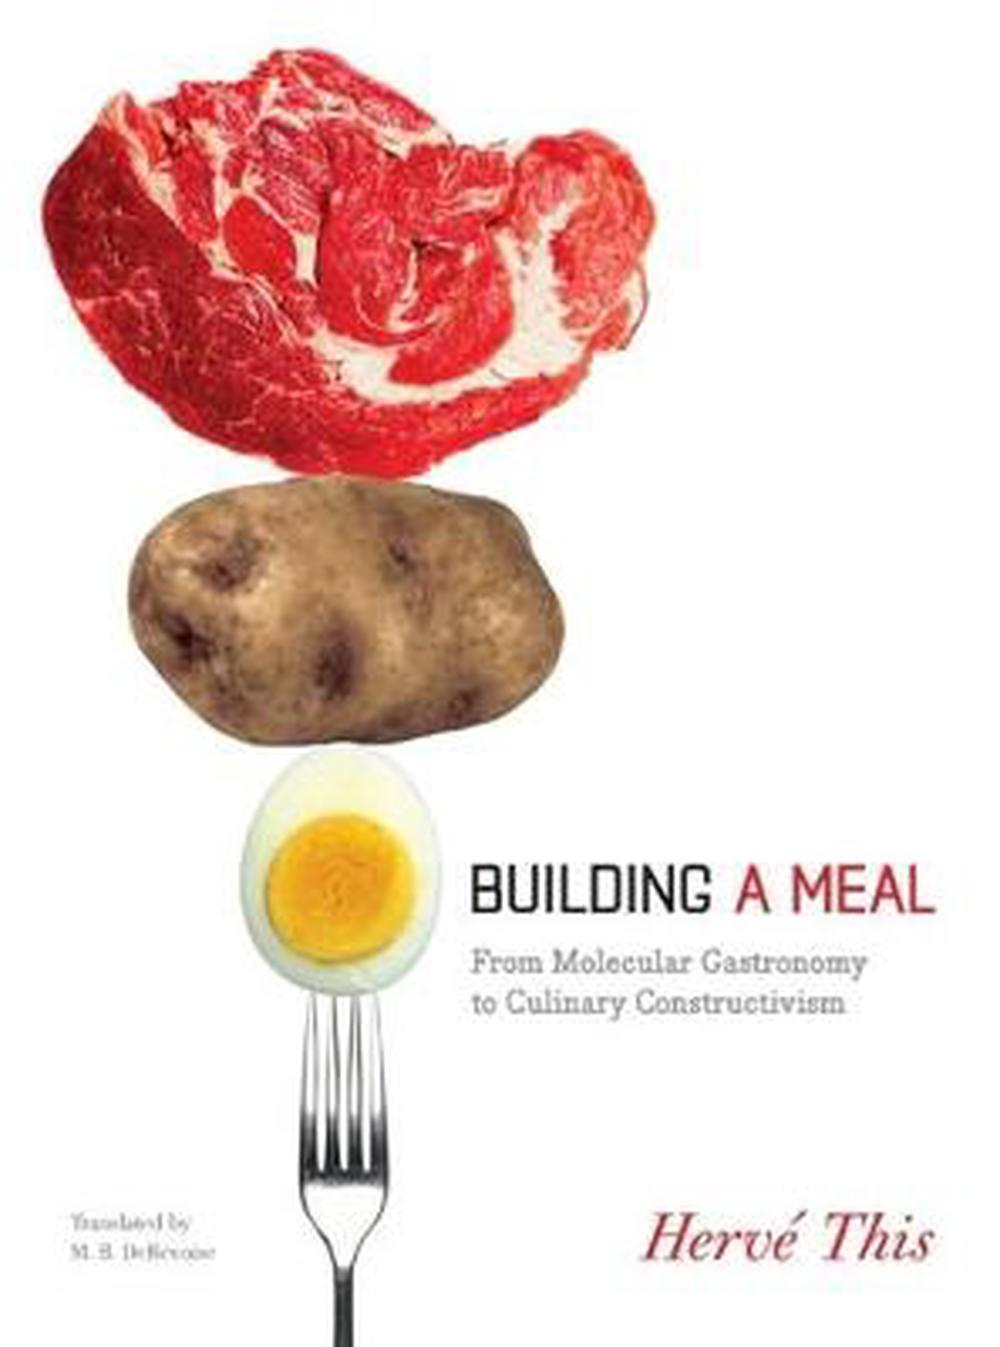 Building a Meal: From Molecular Gastronomy to Culinary Constructivism by Herve This, ISBN: 9780231144667